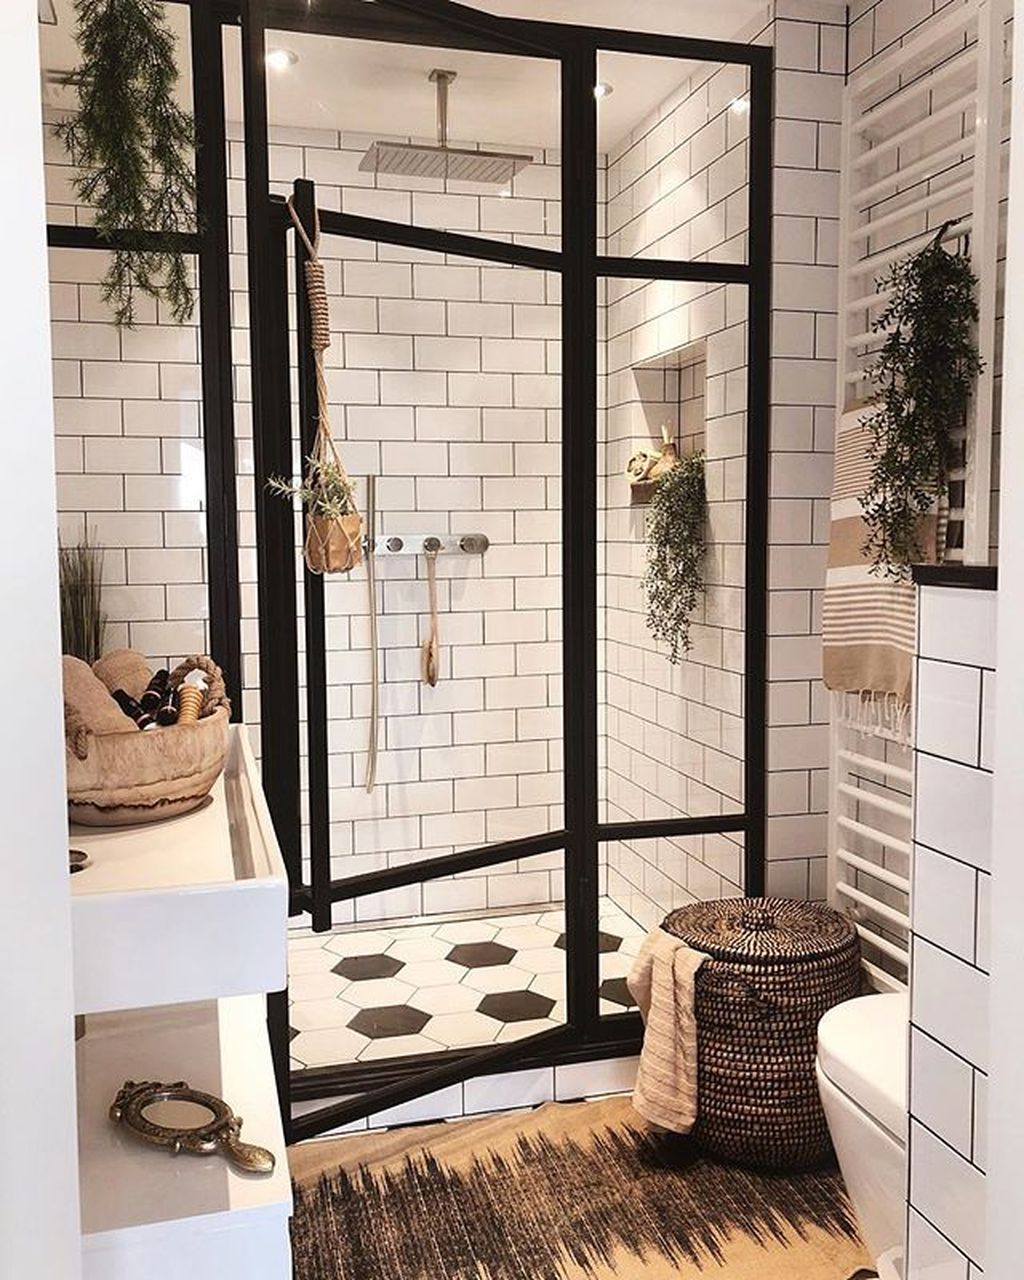 Stunning Industrial Bathroom Design Ideas 15